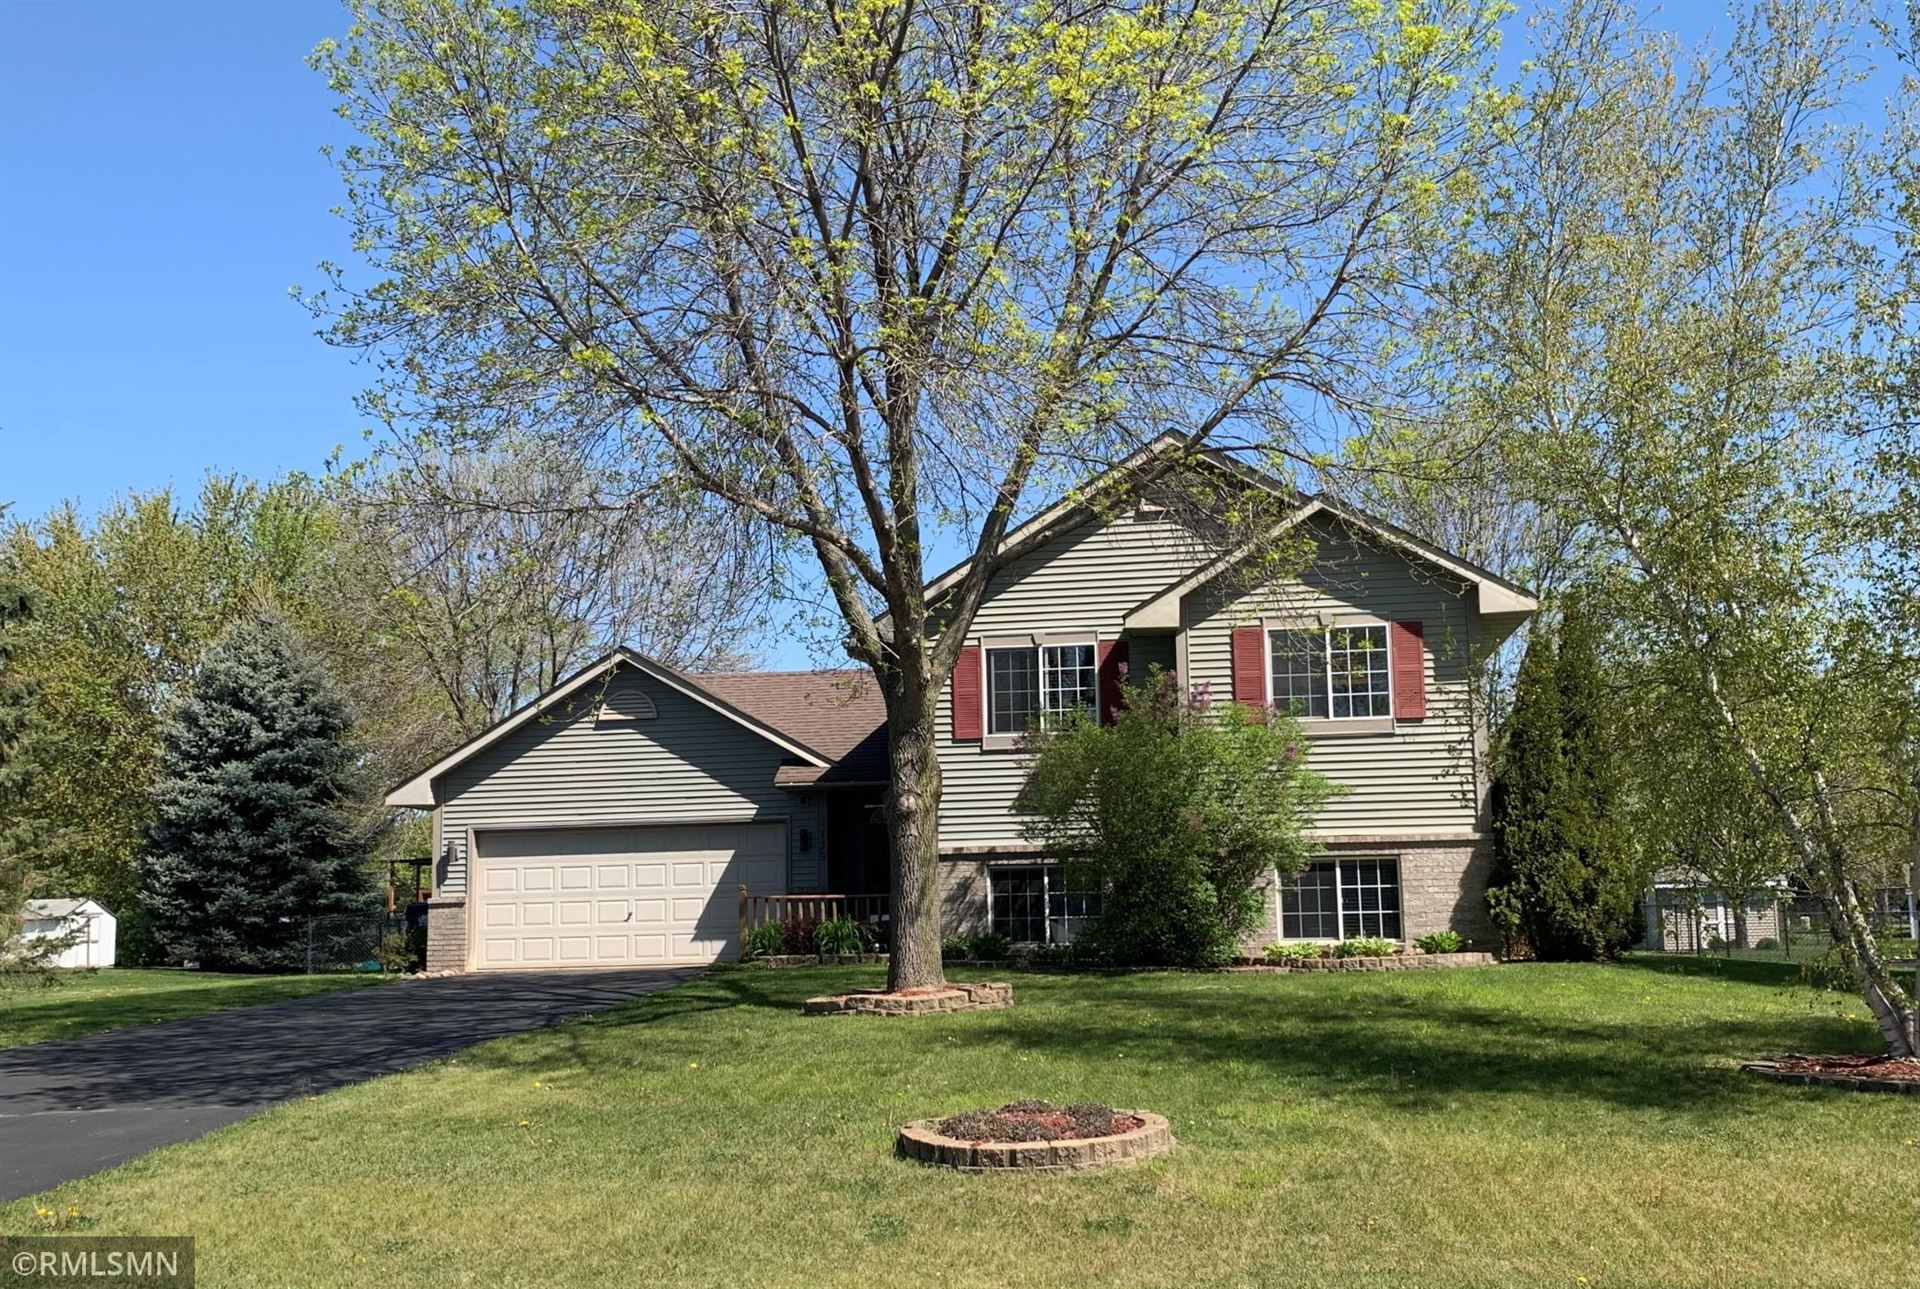 Photo of 3139 199th Street W, Farmington, MN 55024 (MLS # 5756446)